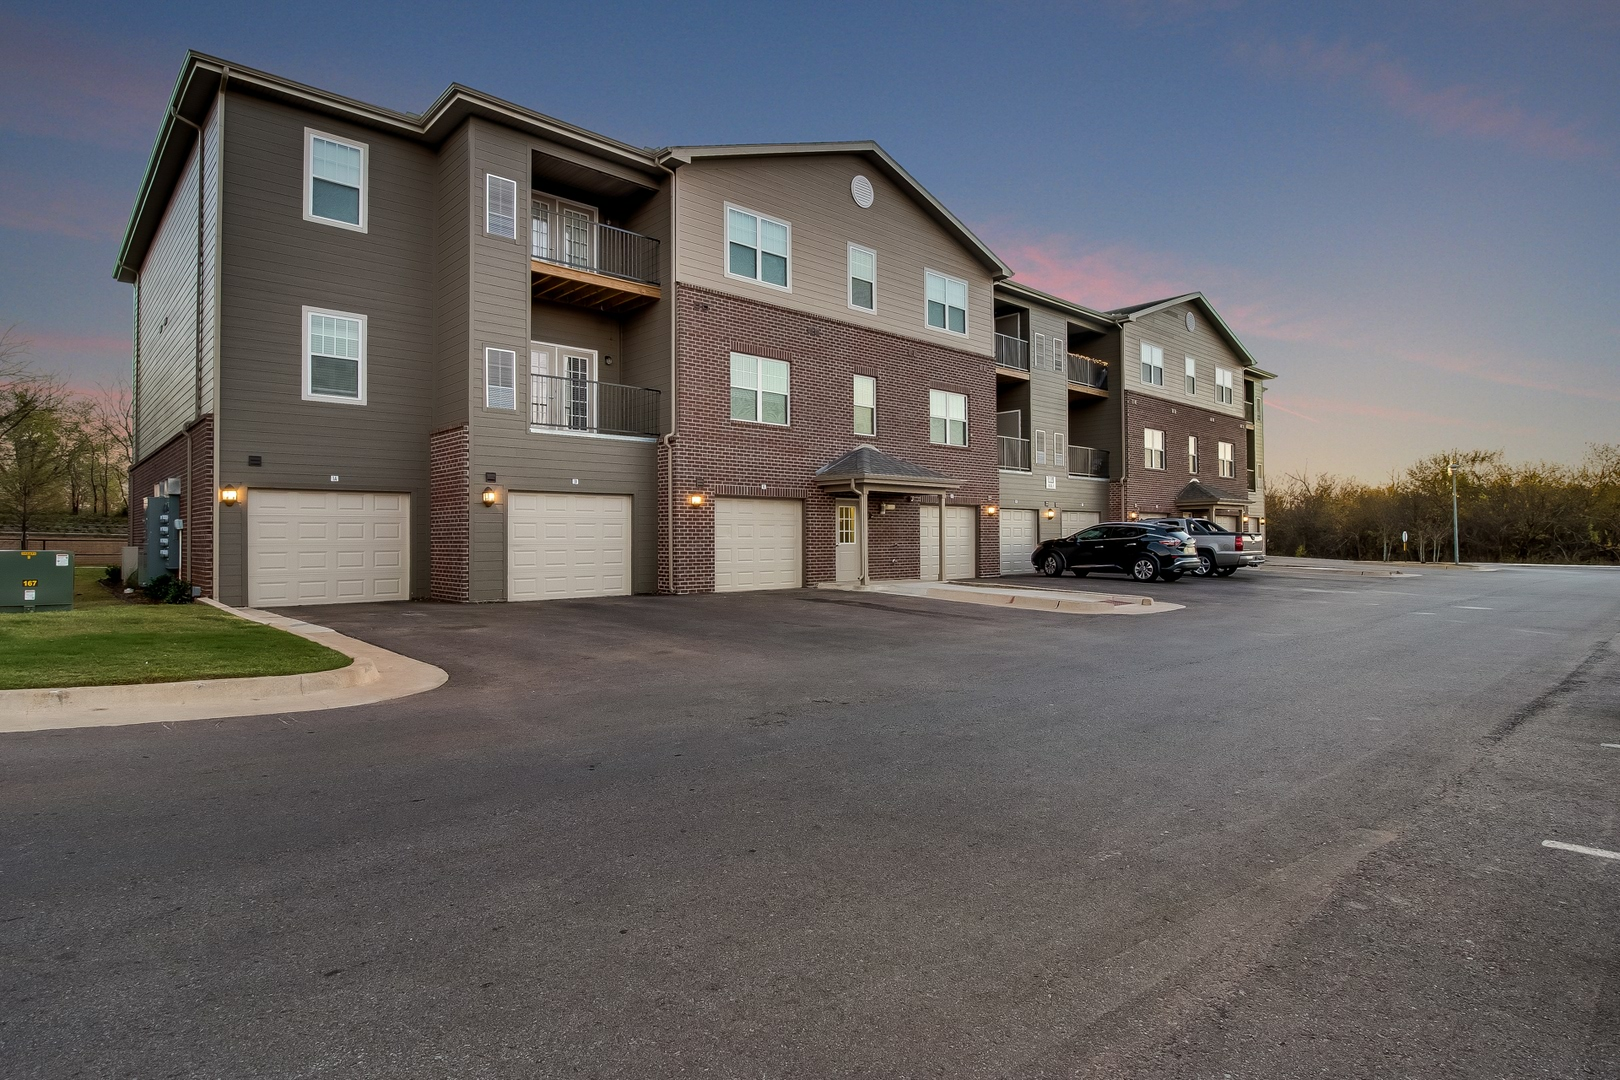 100 3 Bedroom Apartments In Okc Woodland Trails